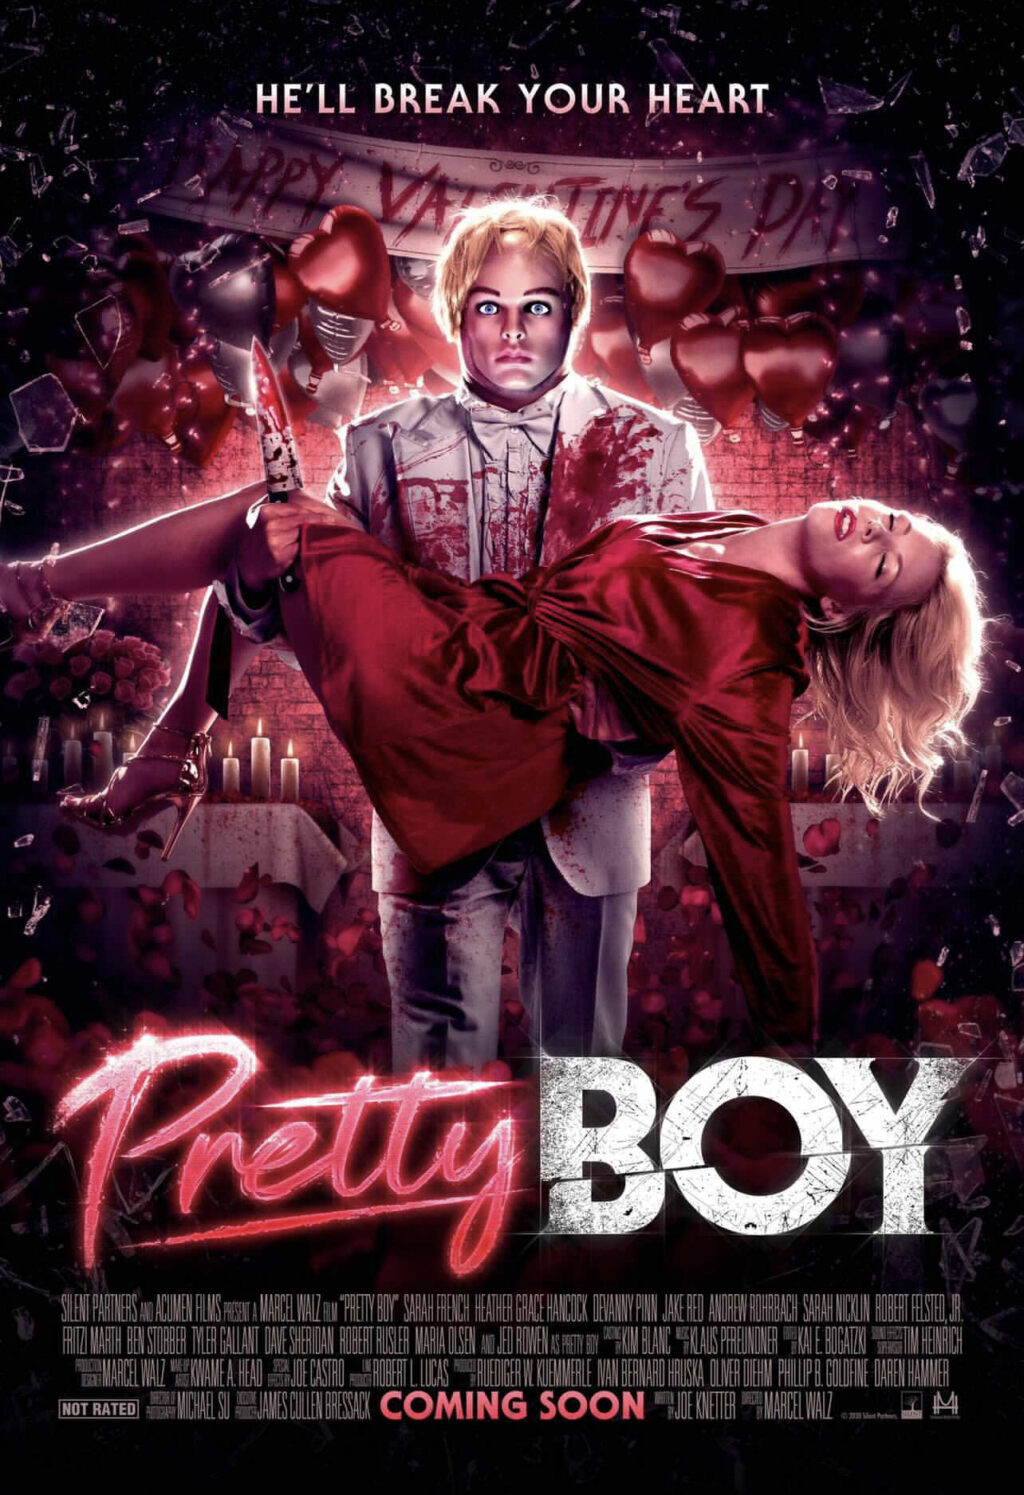 Pretty Boy Poster 1024x1495 - Check Out the New Poster and Images from BLIND Sequel PRETTY BOY